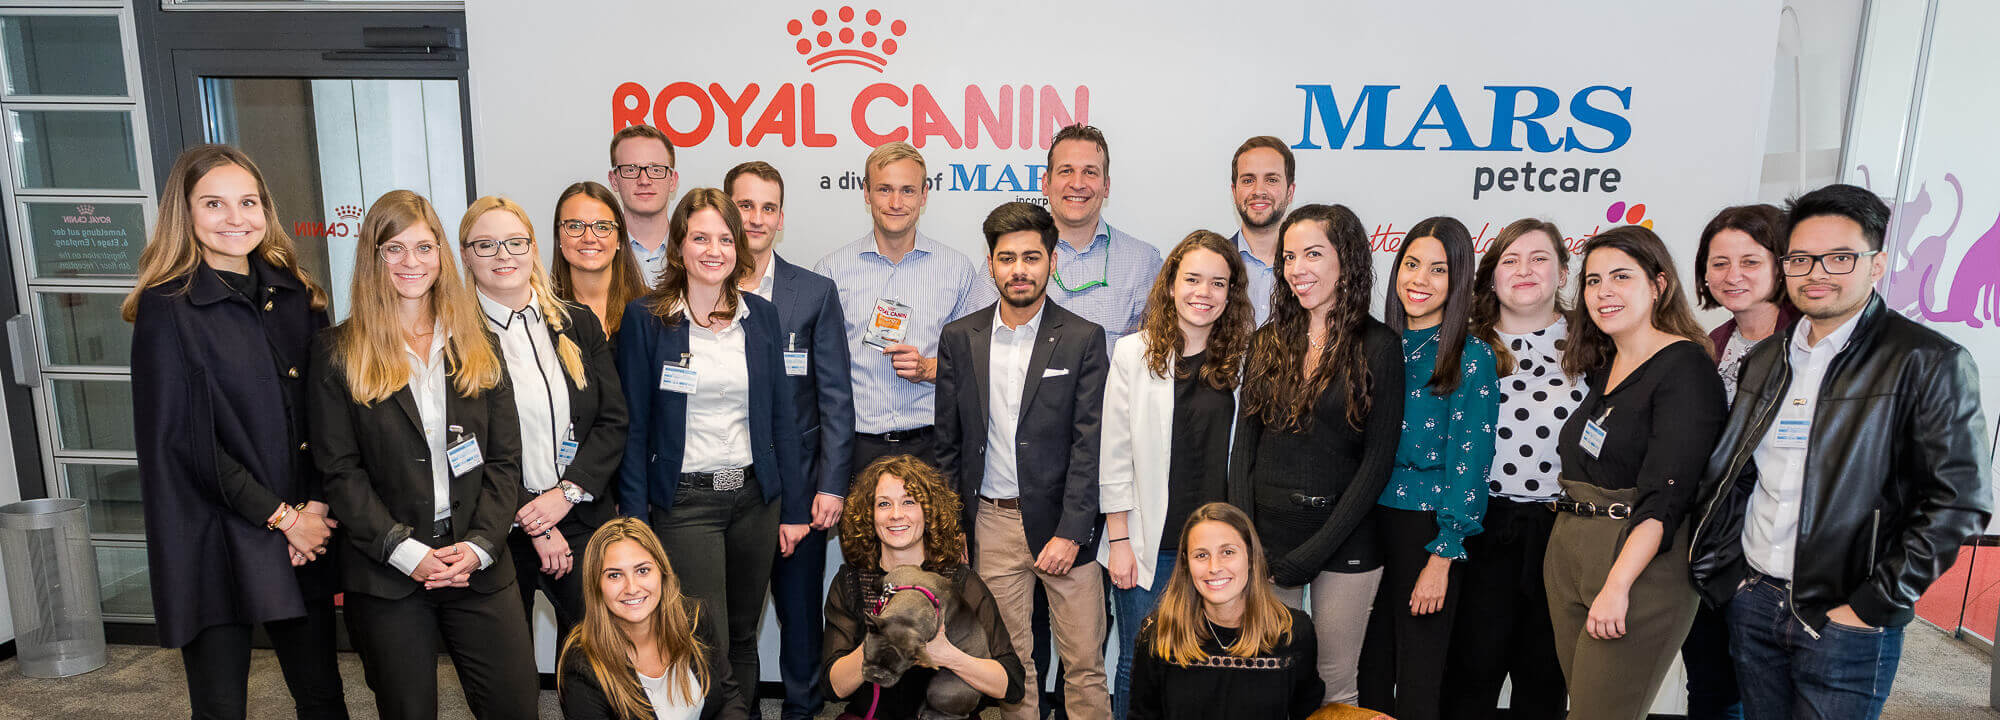 cbs-business-project-with-royal-canin